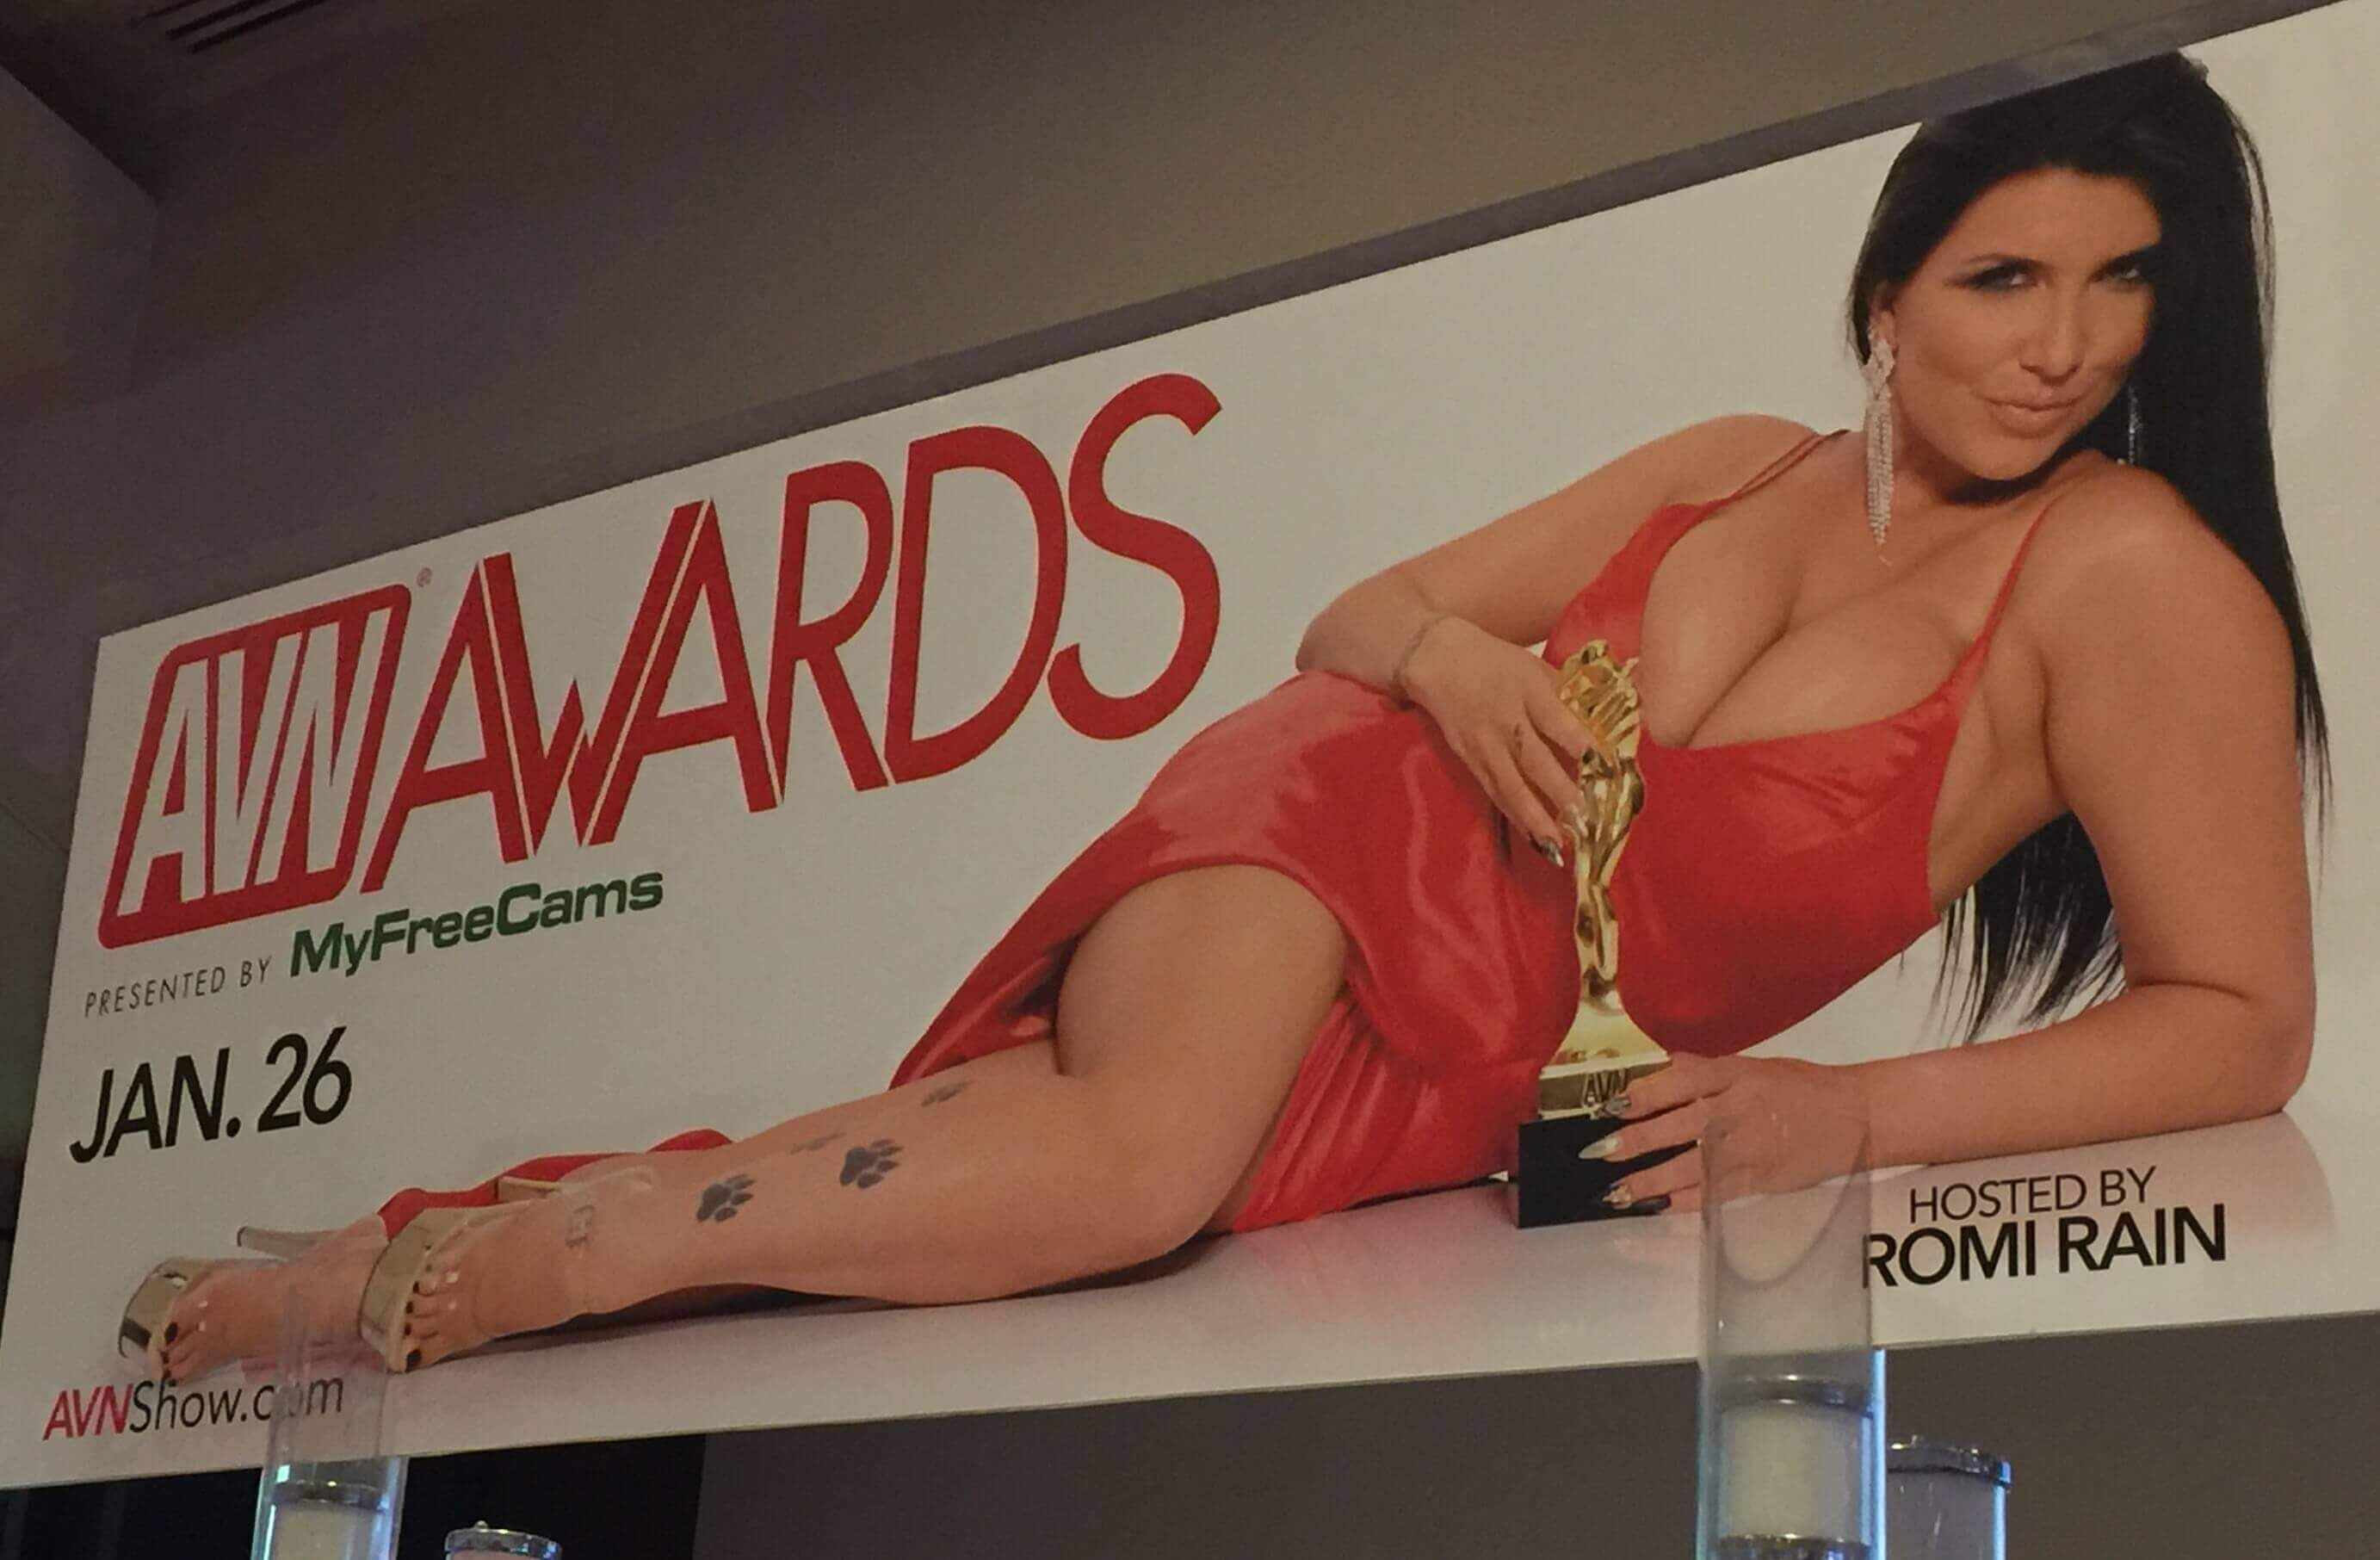 A brunette woman wearing a revealing orange dress lies on her side with an gold awards trophy next to the text AVN Awards 2019.